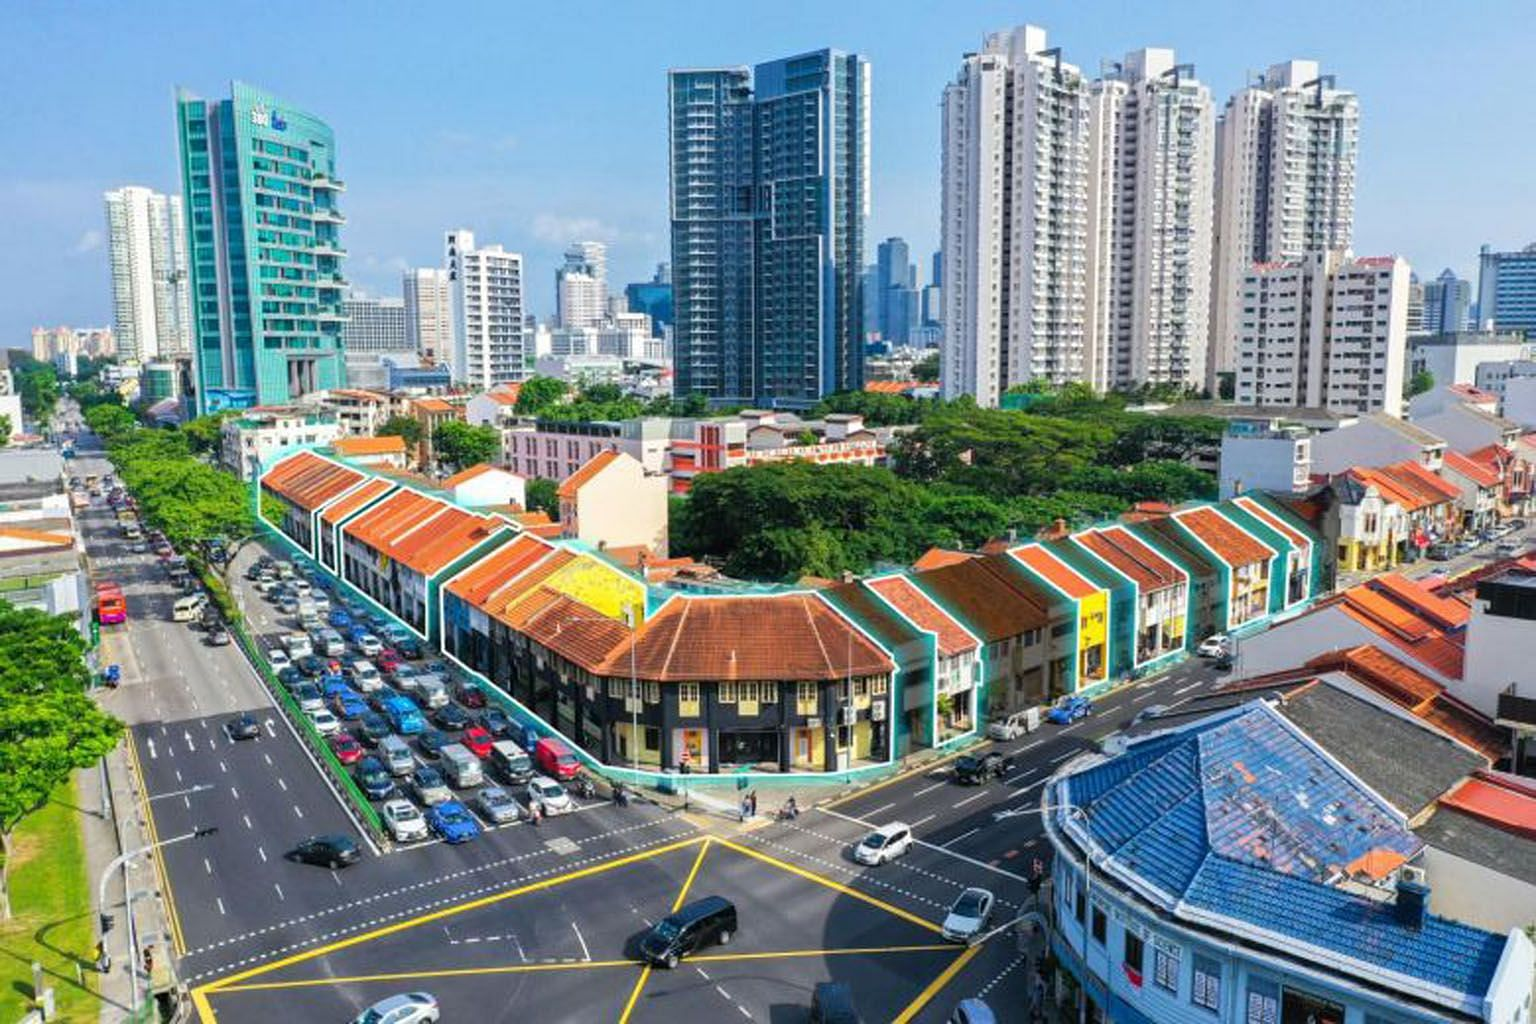 The group of freehold shophouses - called The Lavender Collection - is up for sale by public tender at a guide price of $138 million. The shophouses occupy about 49,200 sq ft, with a gross floor area of about 80,000 sq ft.